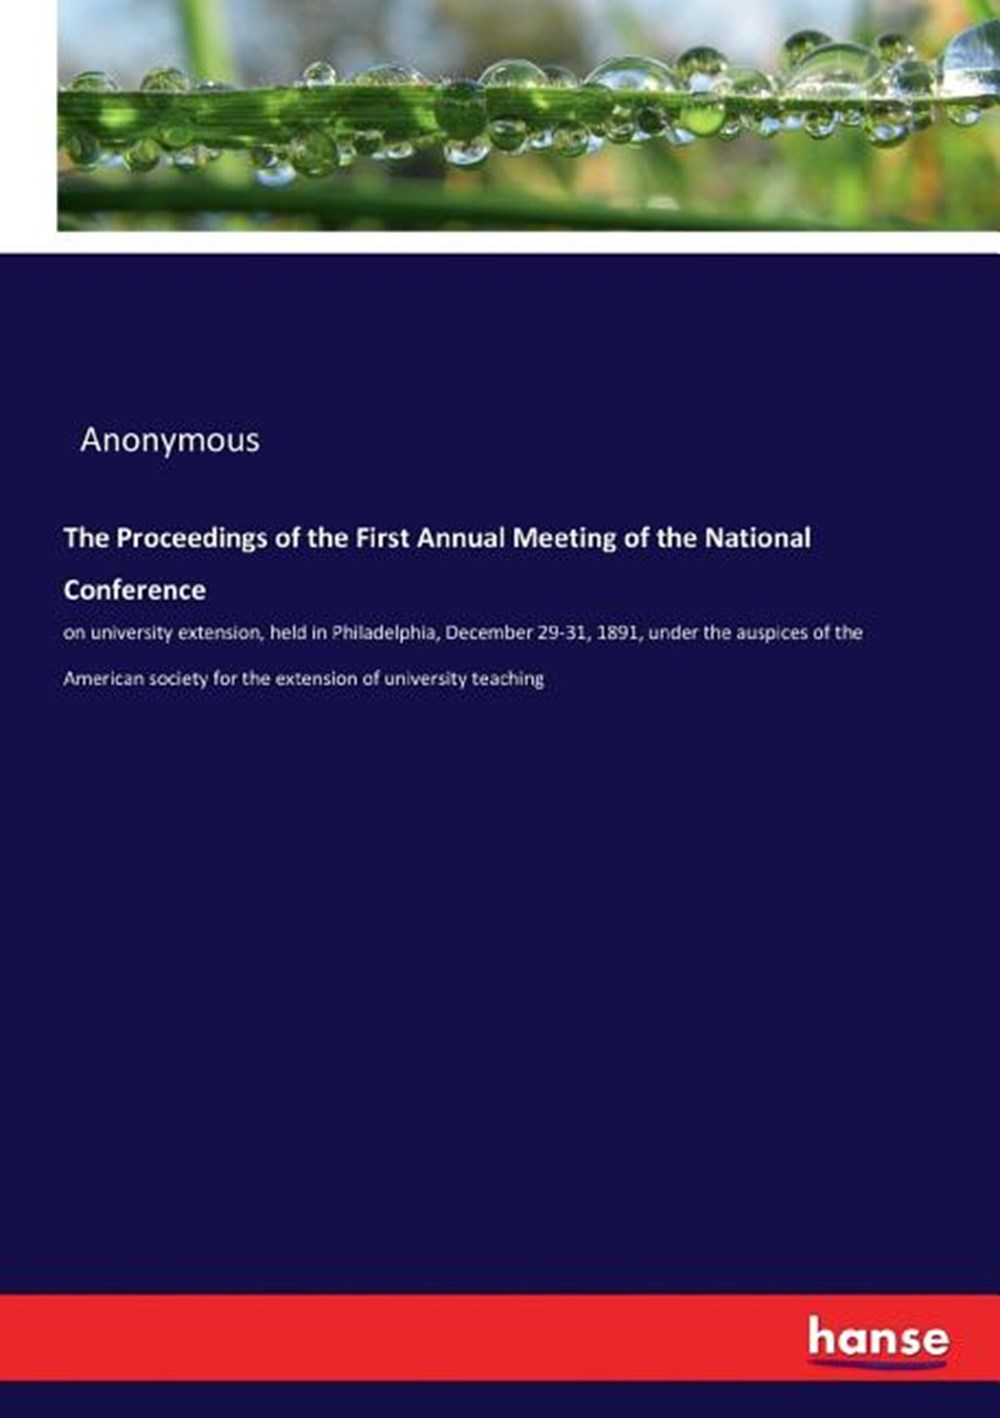 Proceedings of the First Annual Meeting of the National Conference on university extension, held in